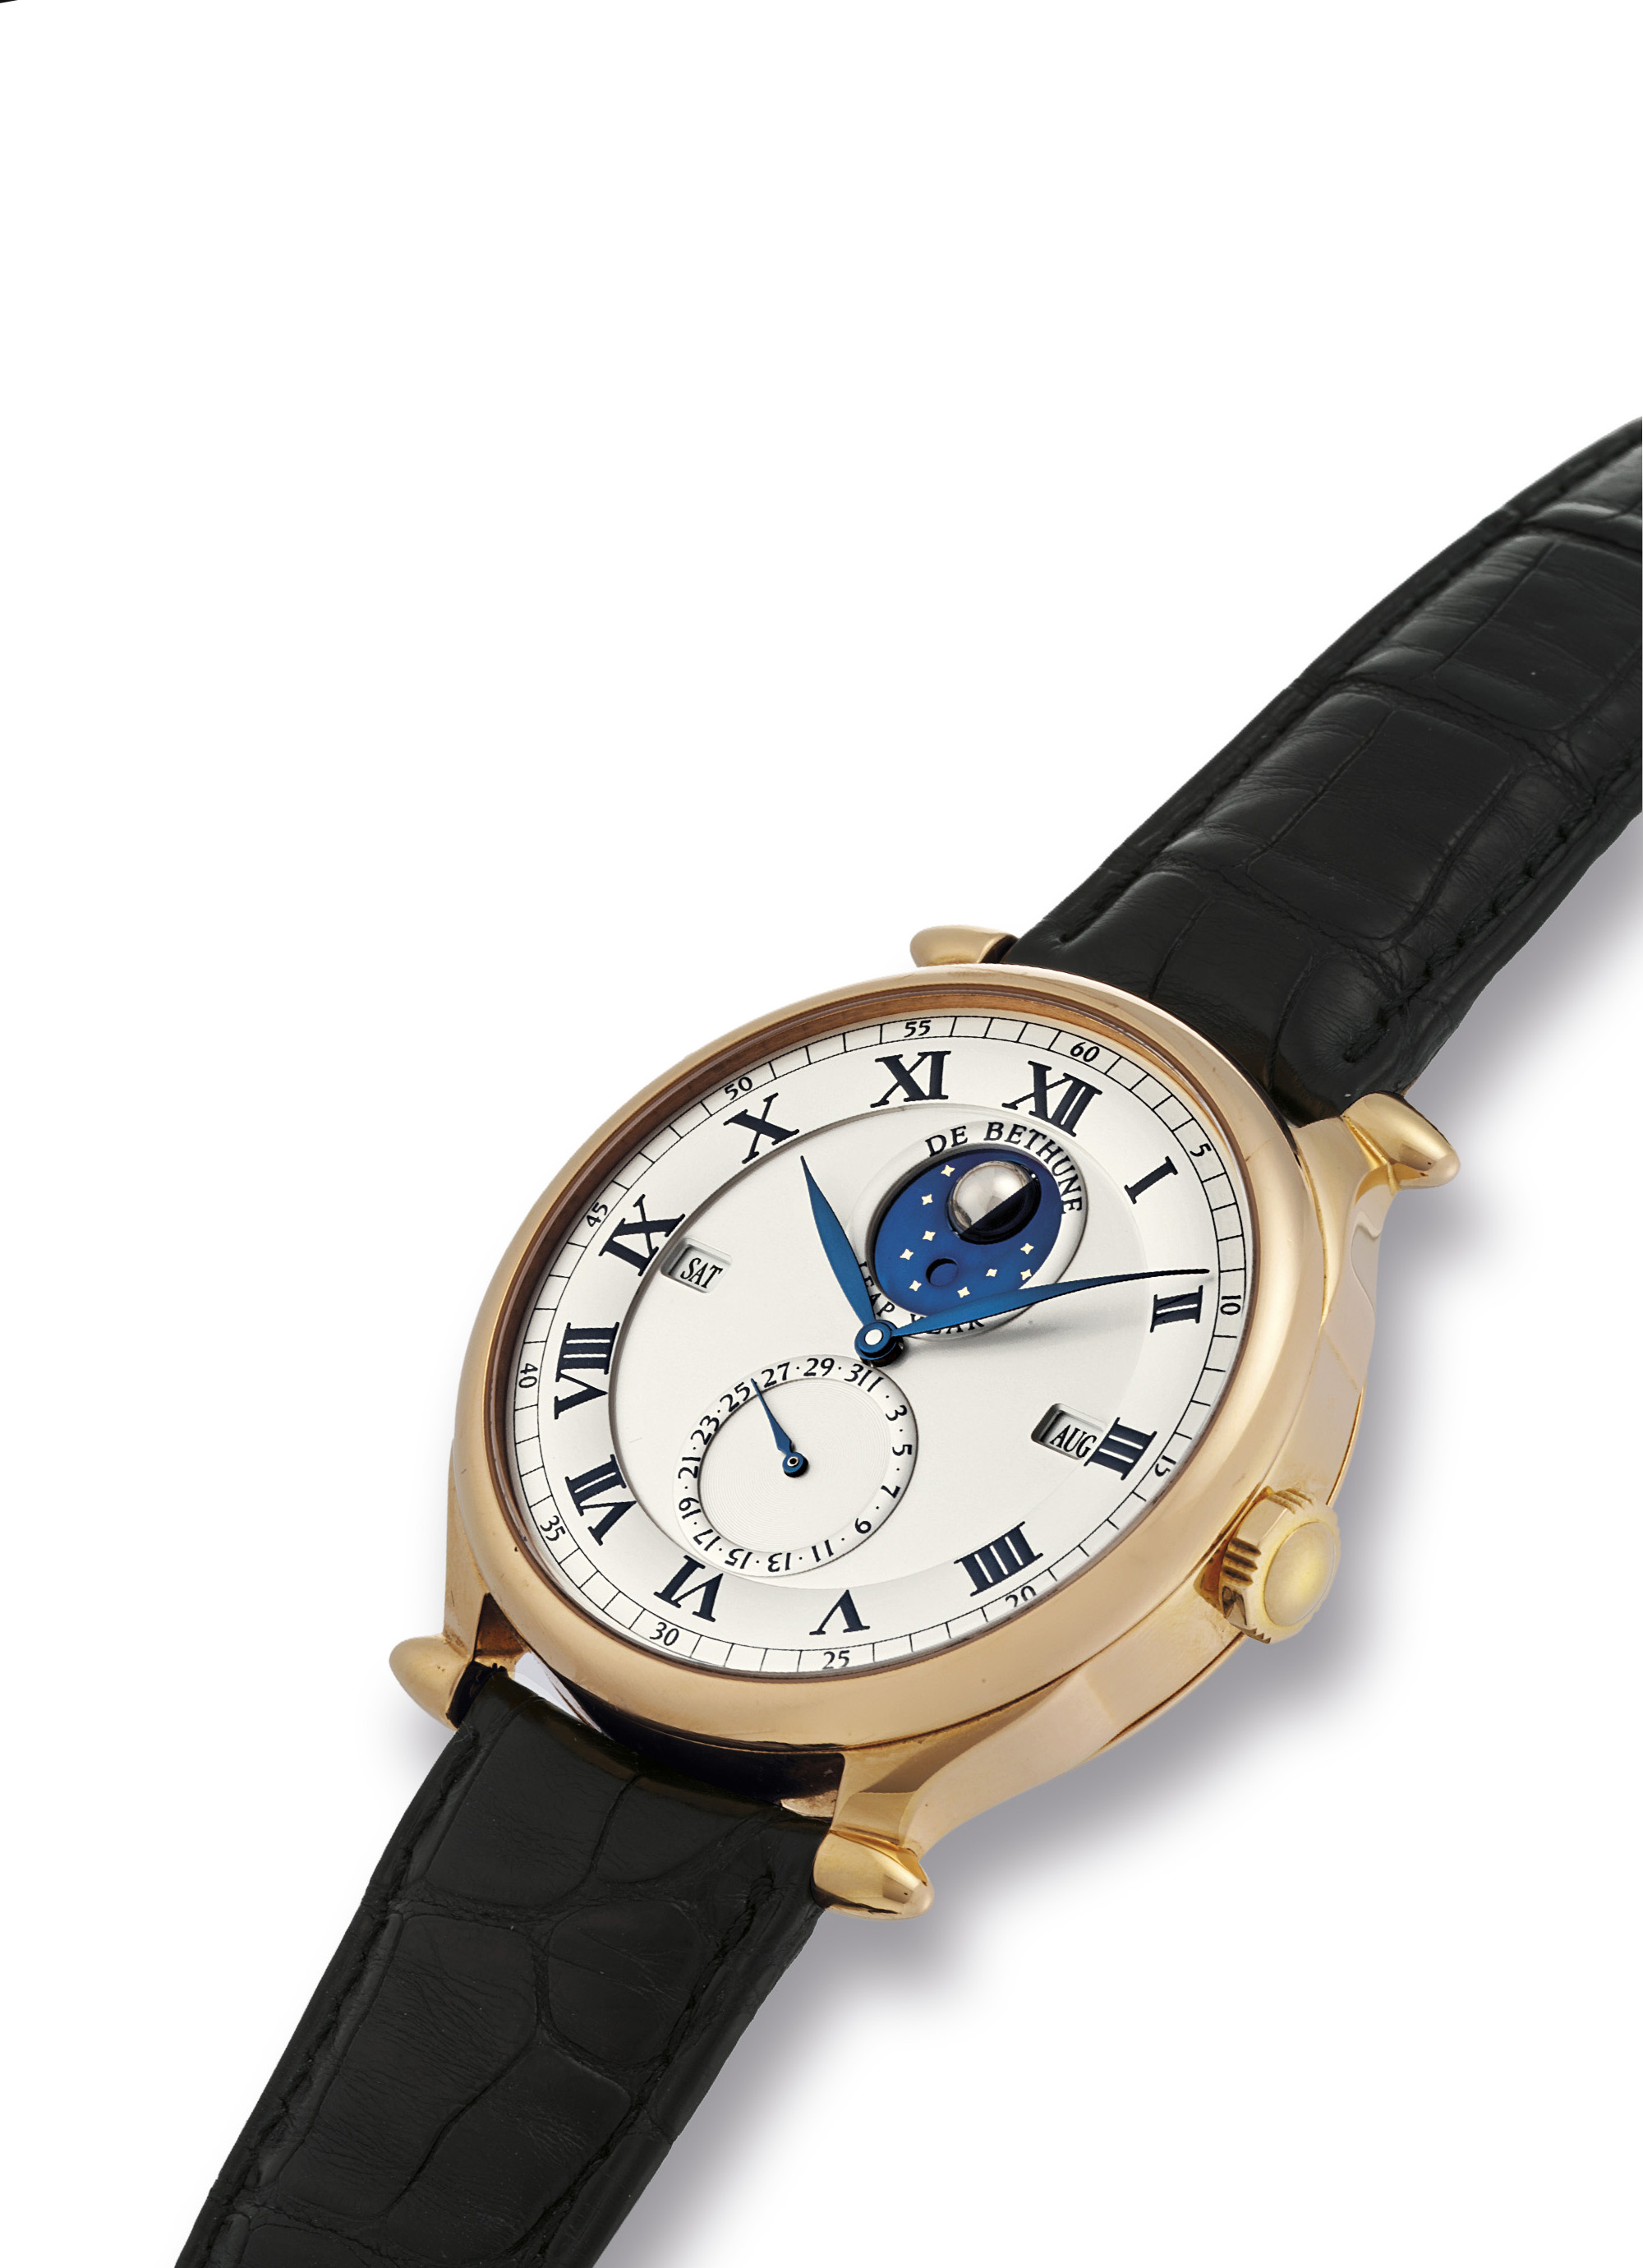 DE BETHUNE. A FINE AND LARGE 18K PINK GOLD PERPETUAL CALENDAR WRISTWATCH WITH 3-DIMENSIONAL REVOLVING MOON PHASES AND LEAP YEAR INDICATION